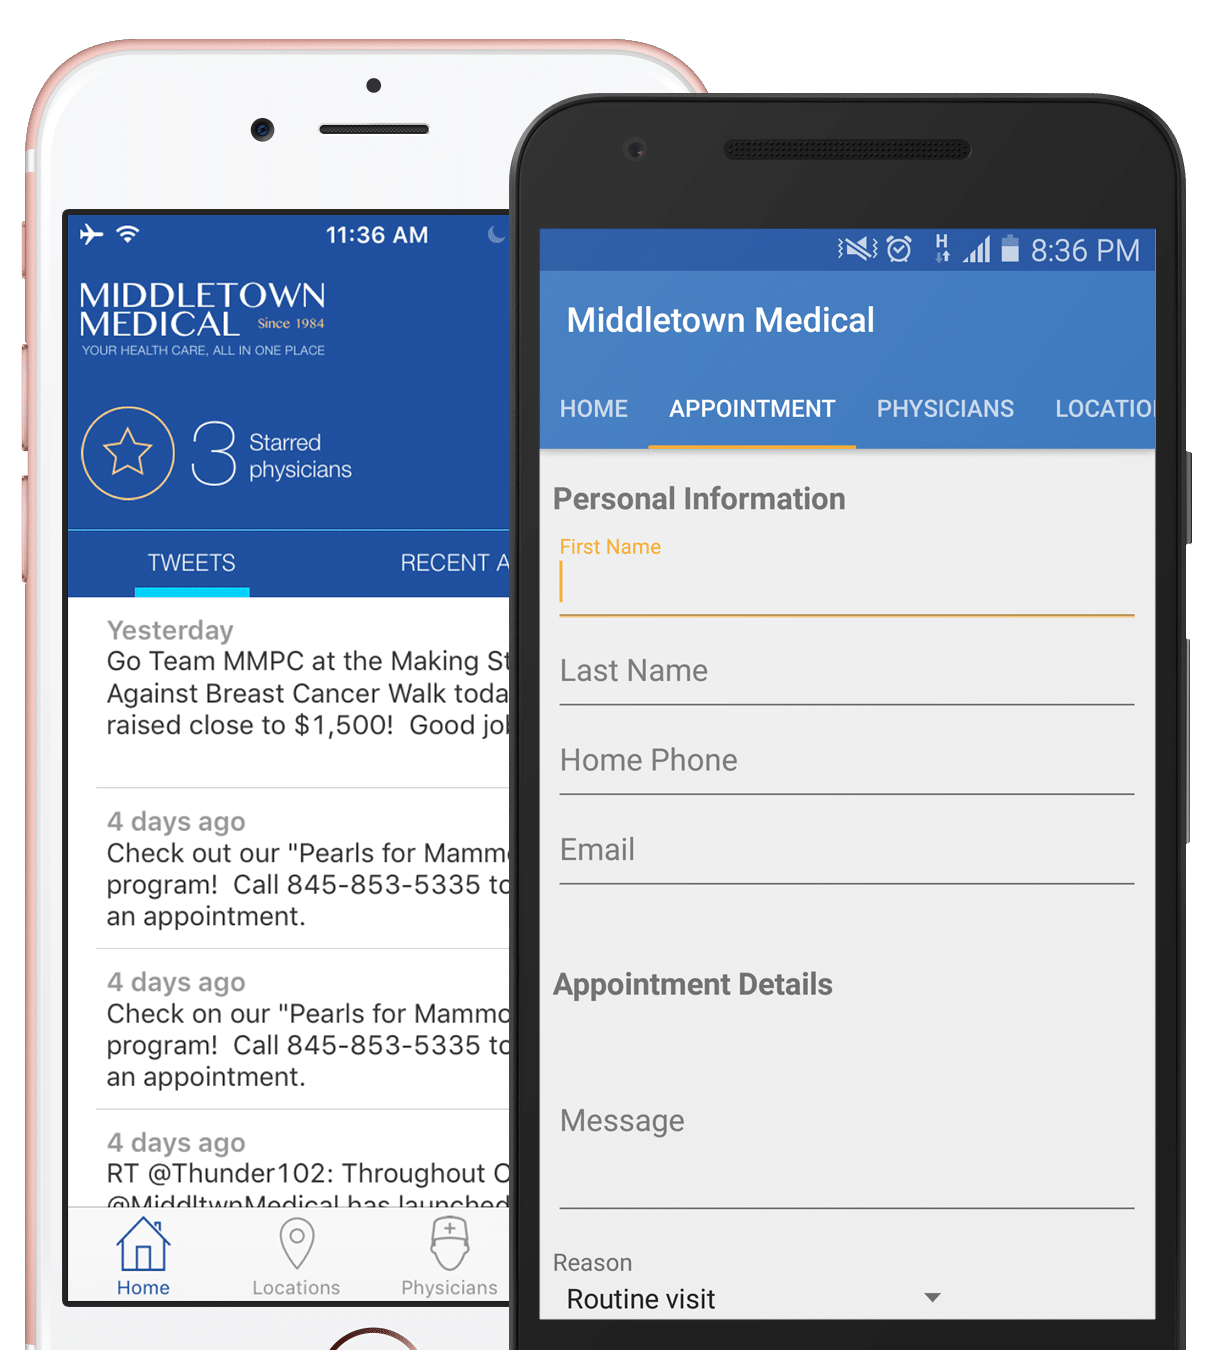 Middletown Medical App